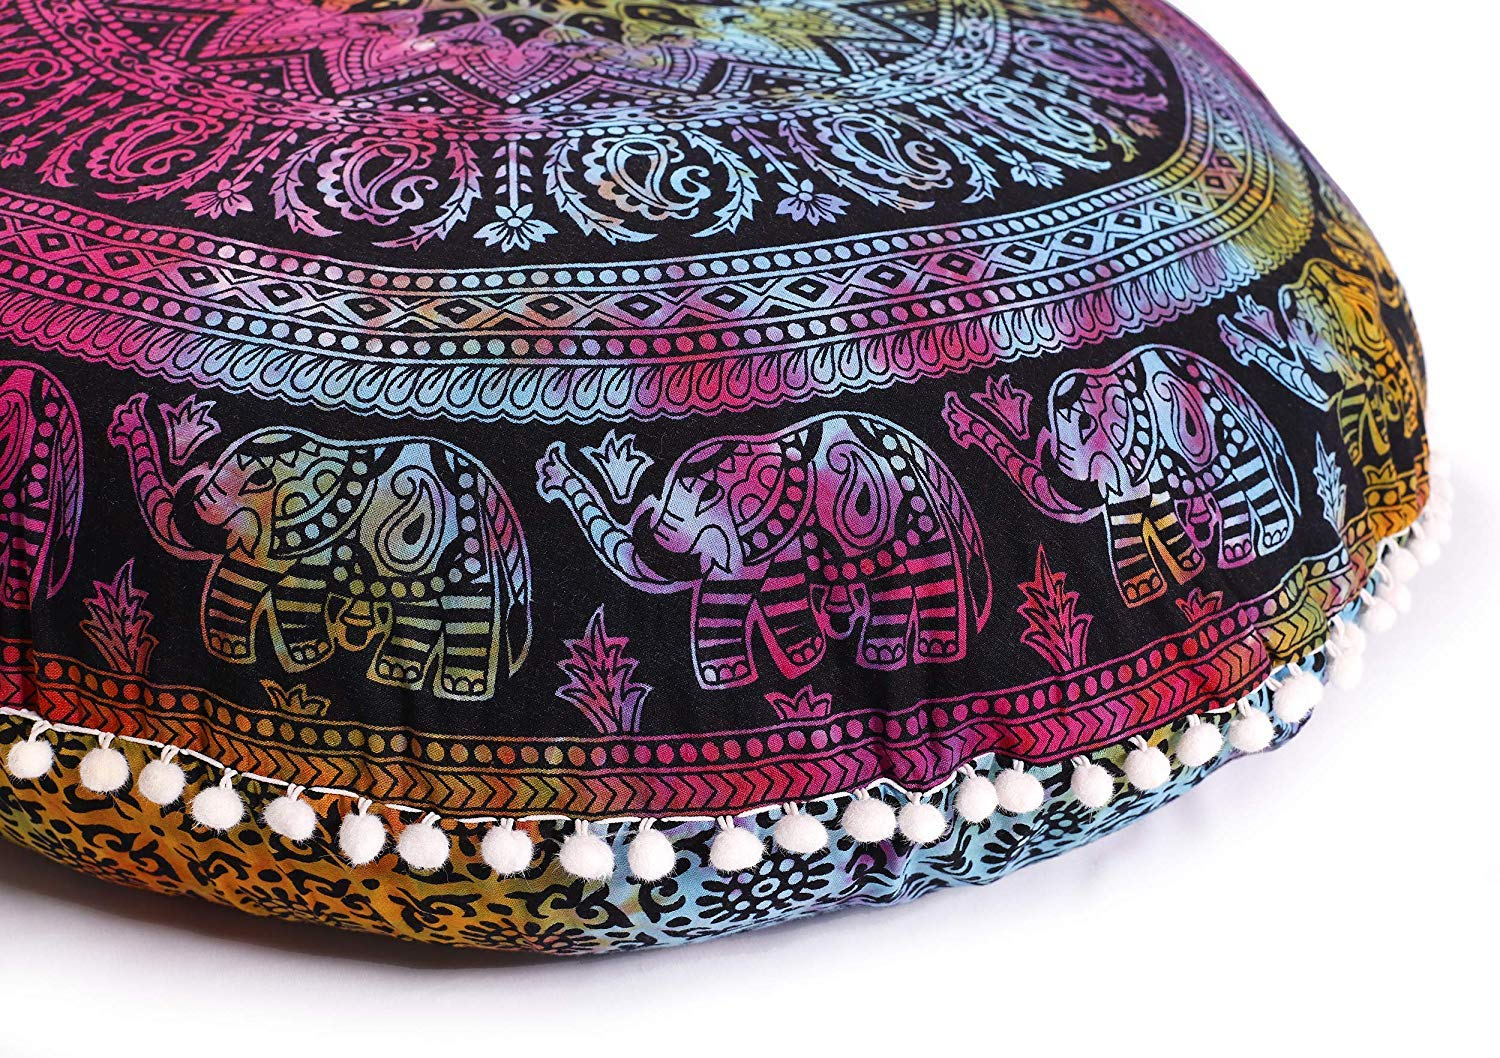 Hemsi-77 Indian Mandala Elephant Pillow - Cushion Cover - Pouf Cover Round Bohemian Yoga Decor Floor Cushion Case- 32'' Tie Dye by Hemsi-77